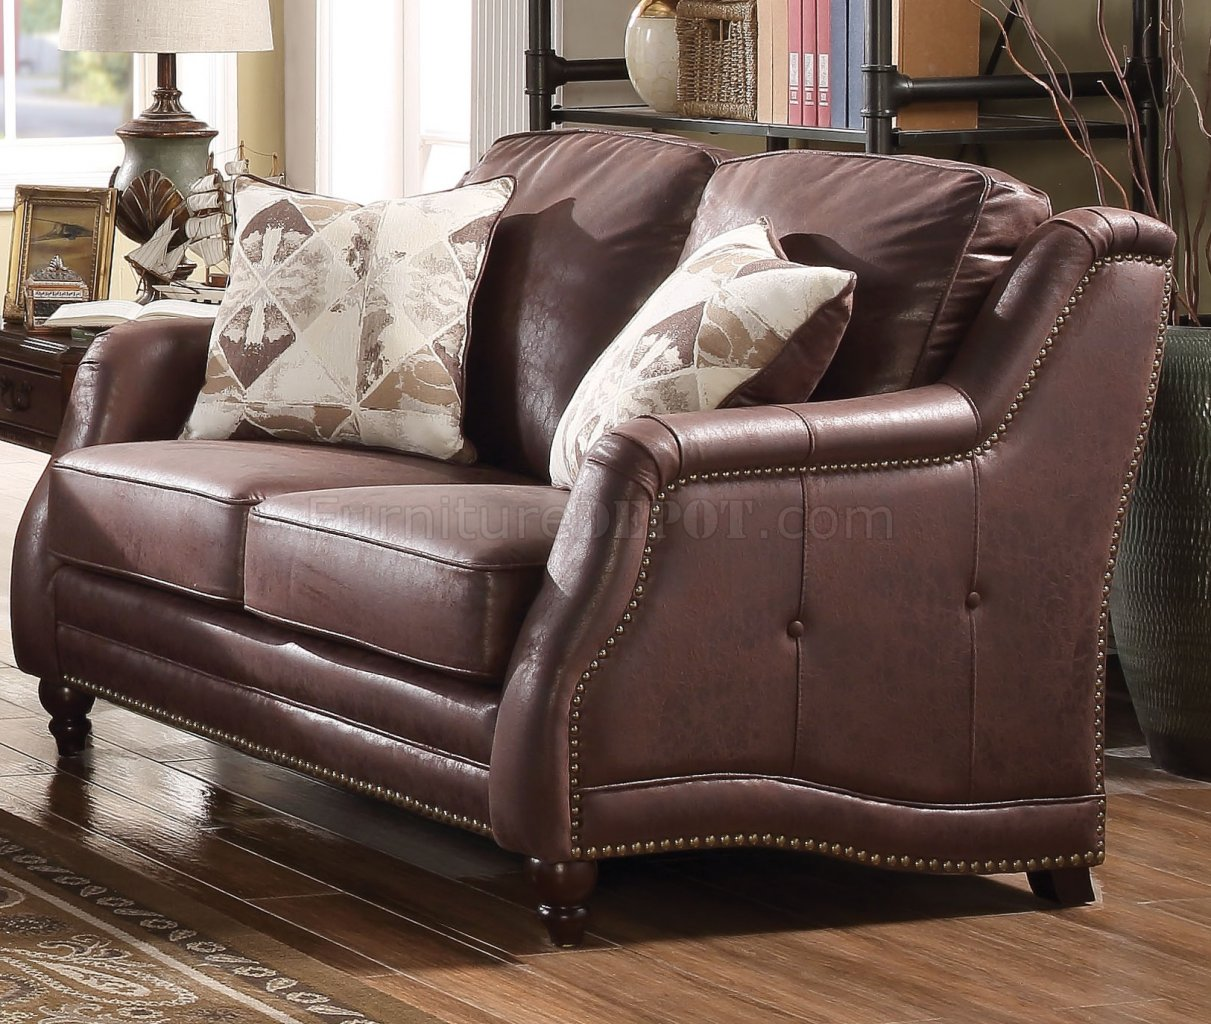 acme sectional sofa chocolate rattan replacement cushions nickolas 52065 in fabric by w options